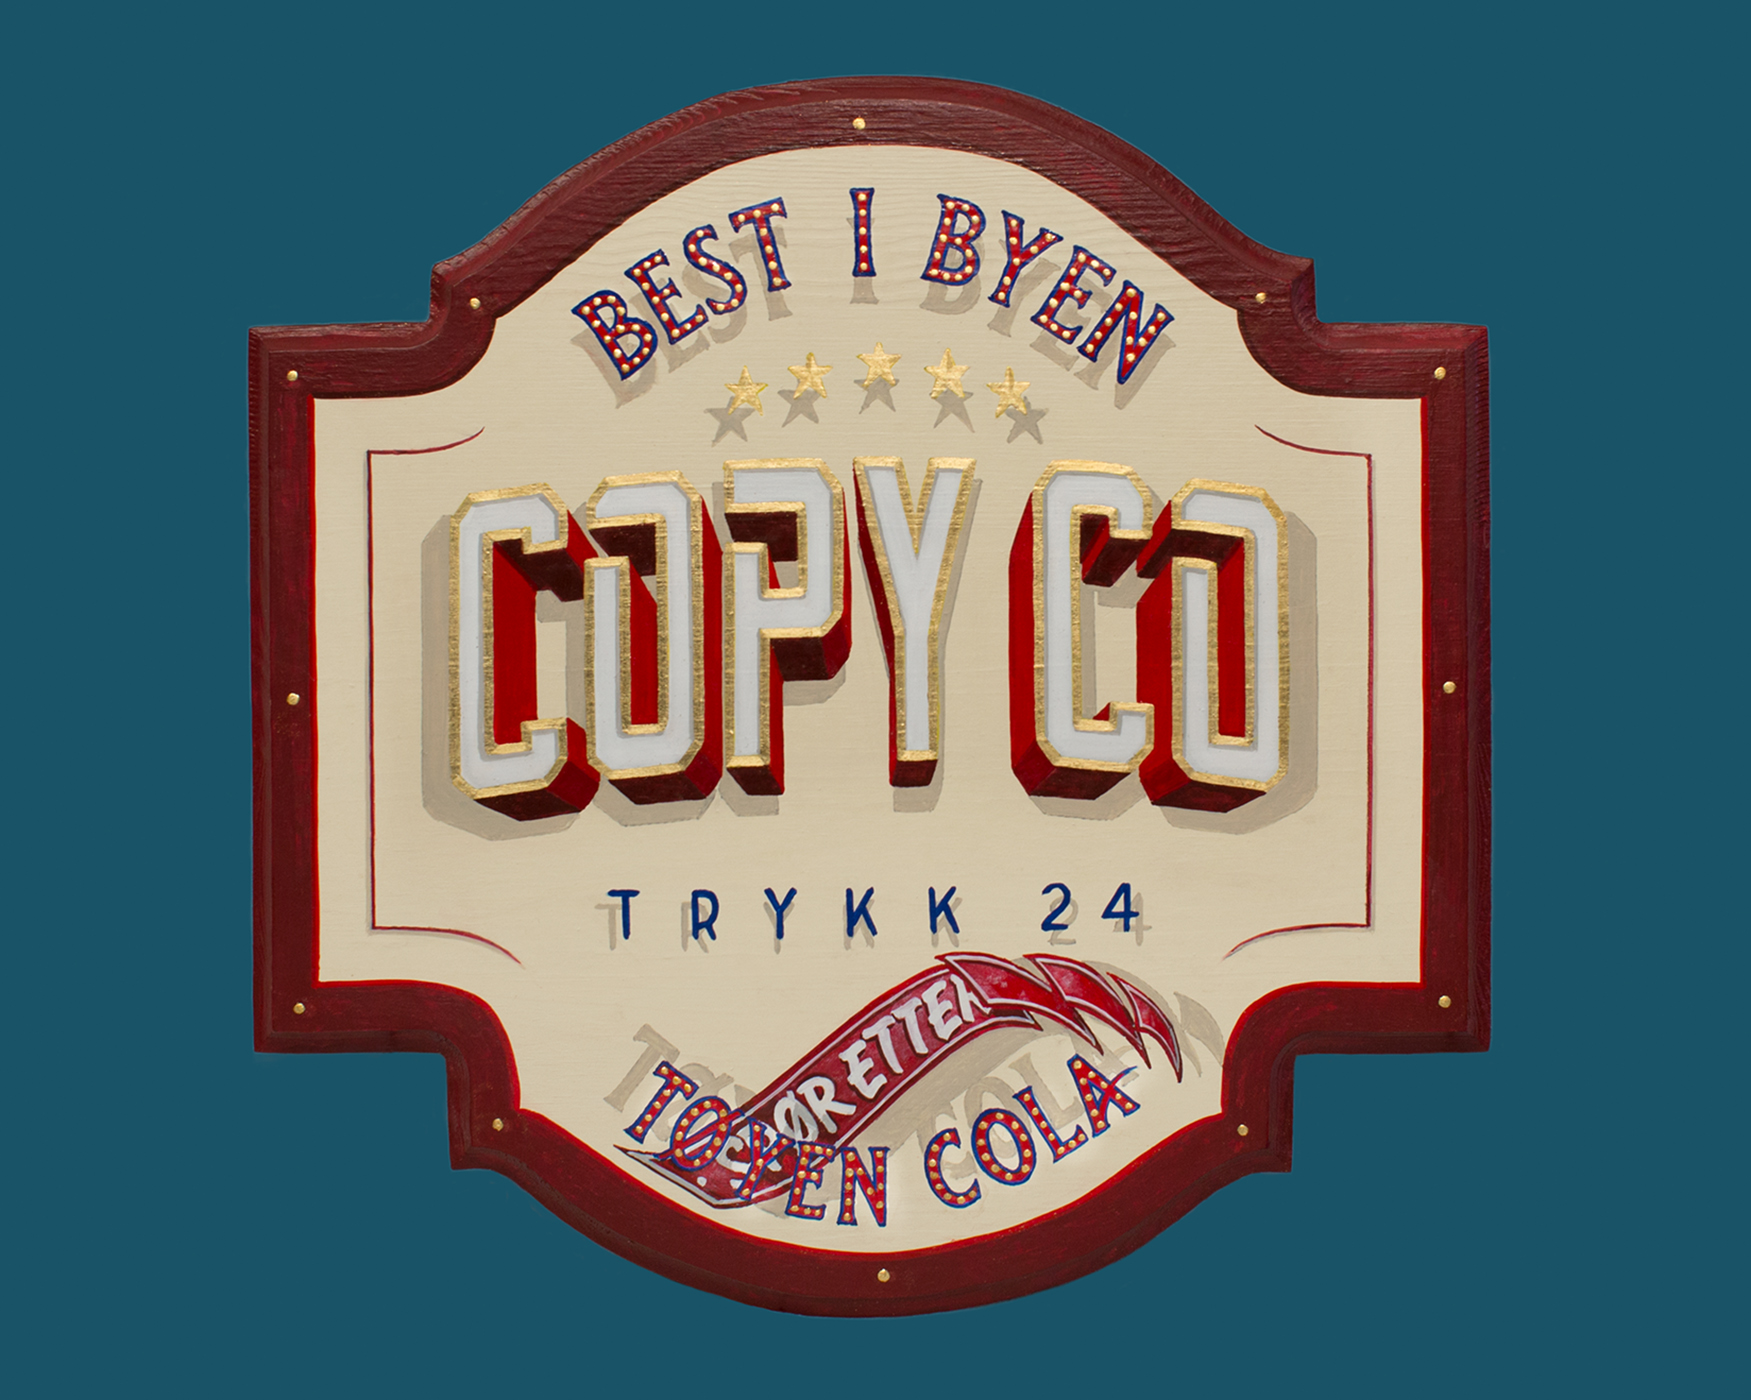 Copy CO & Tøyen Cola